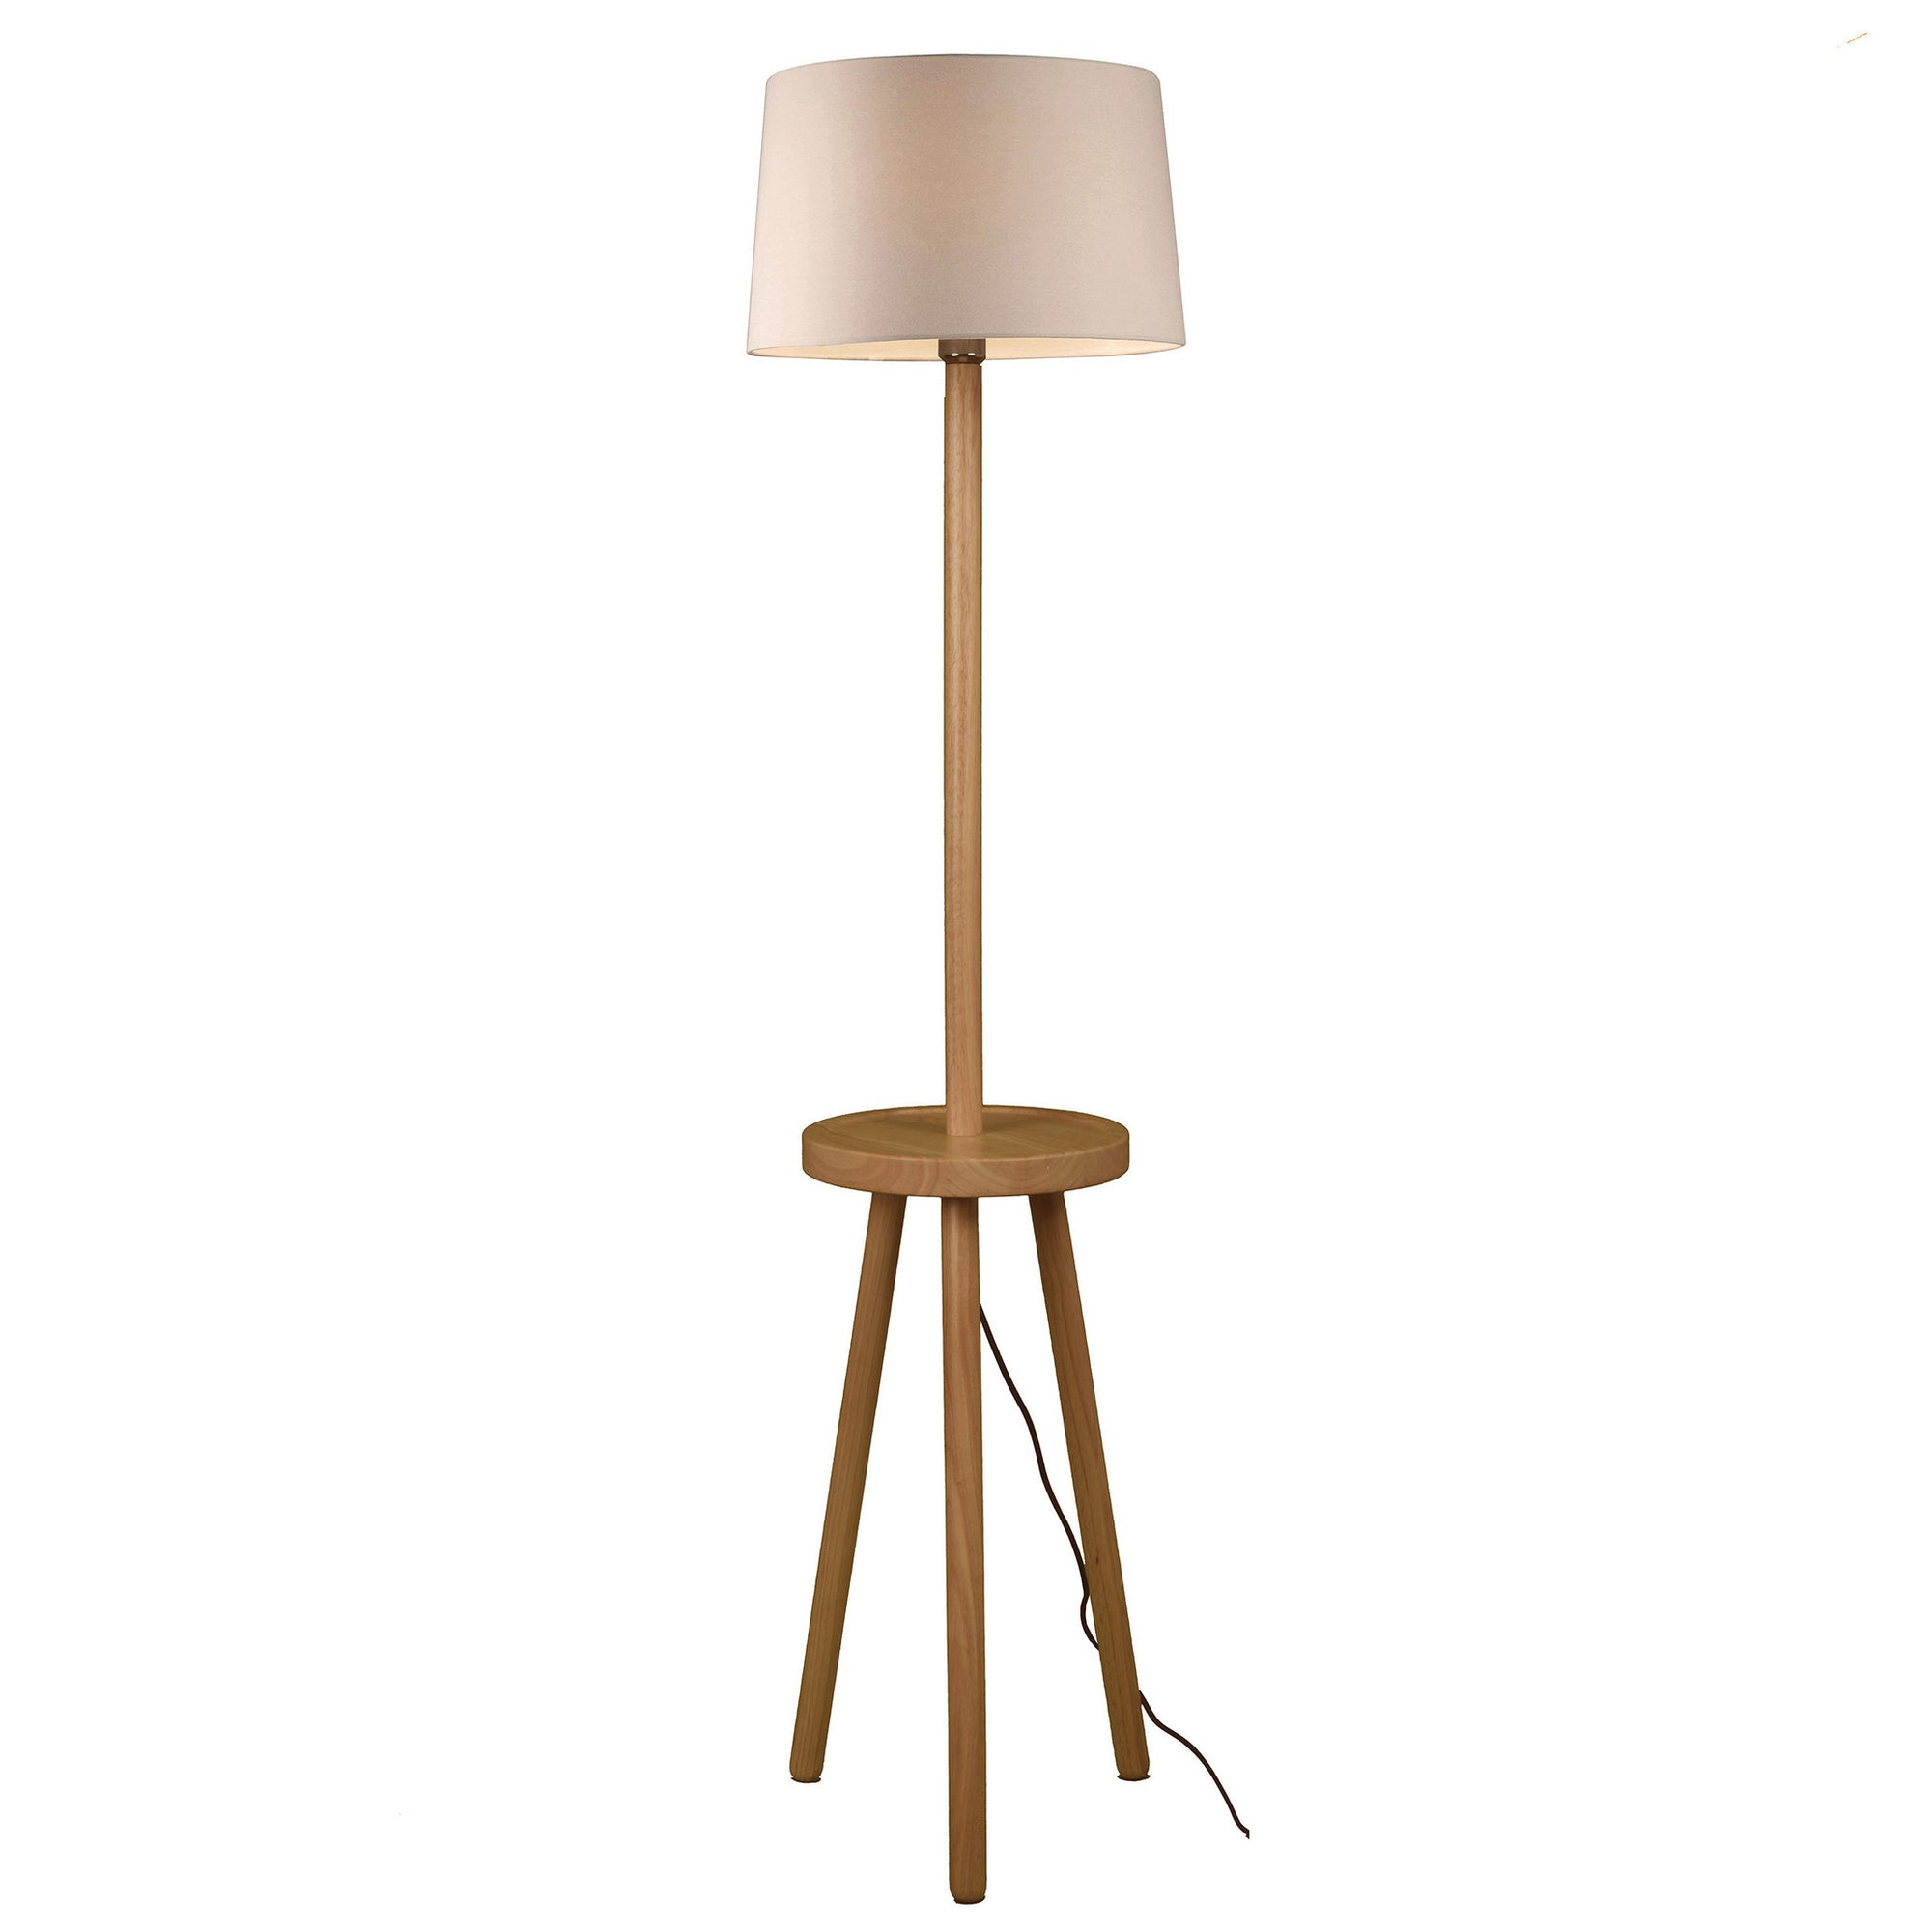 Solid Wood floor lamp BPMT15-W